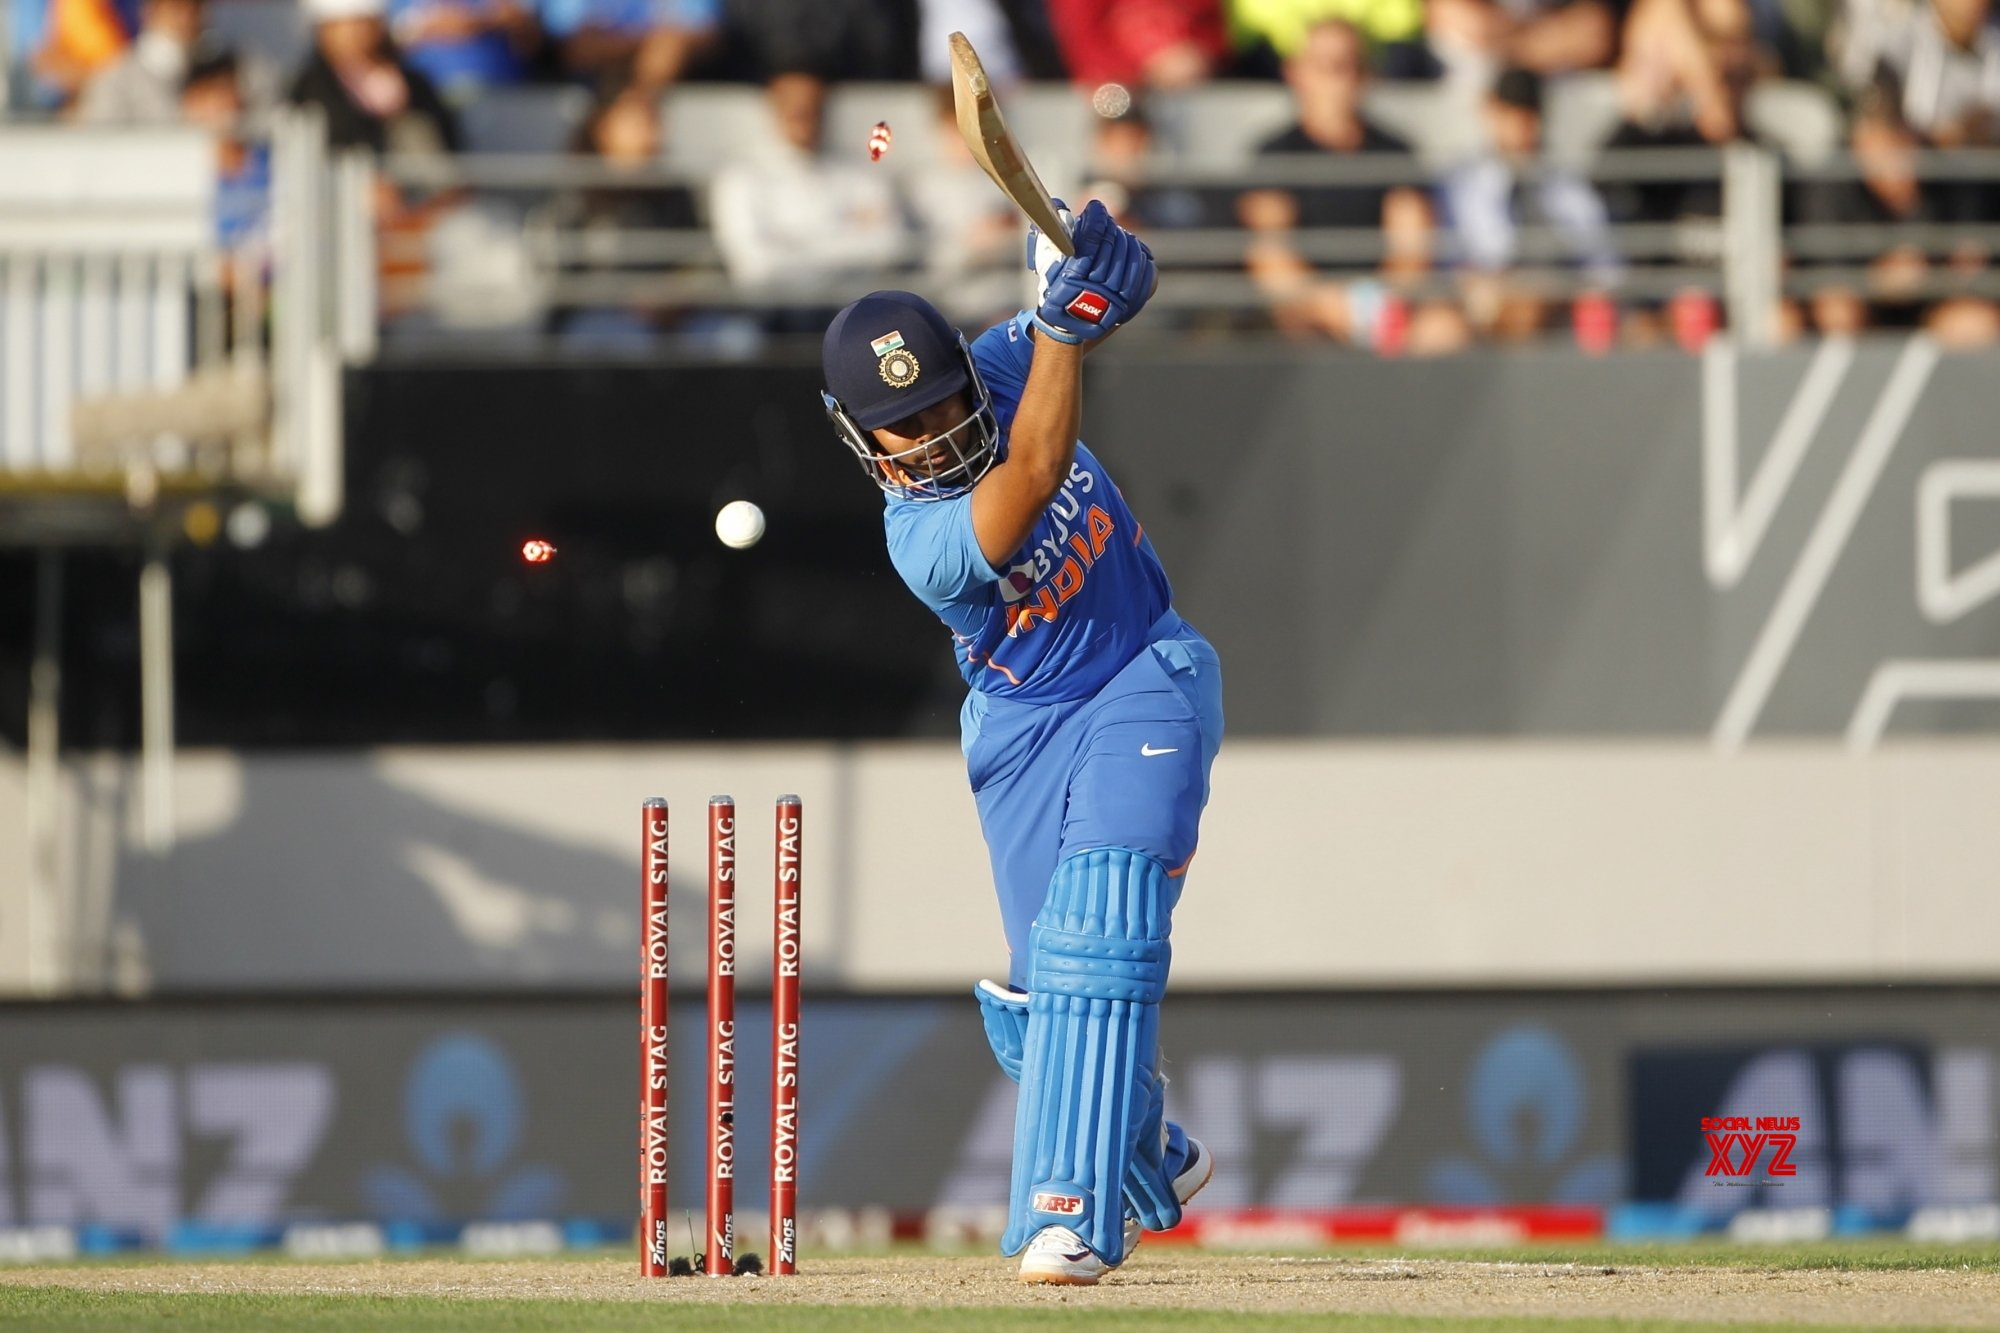 Auckland: 2nd ODI - India Vs New Zealand (Batch - 5) #Gallery